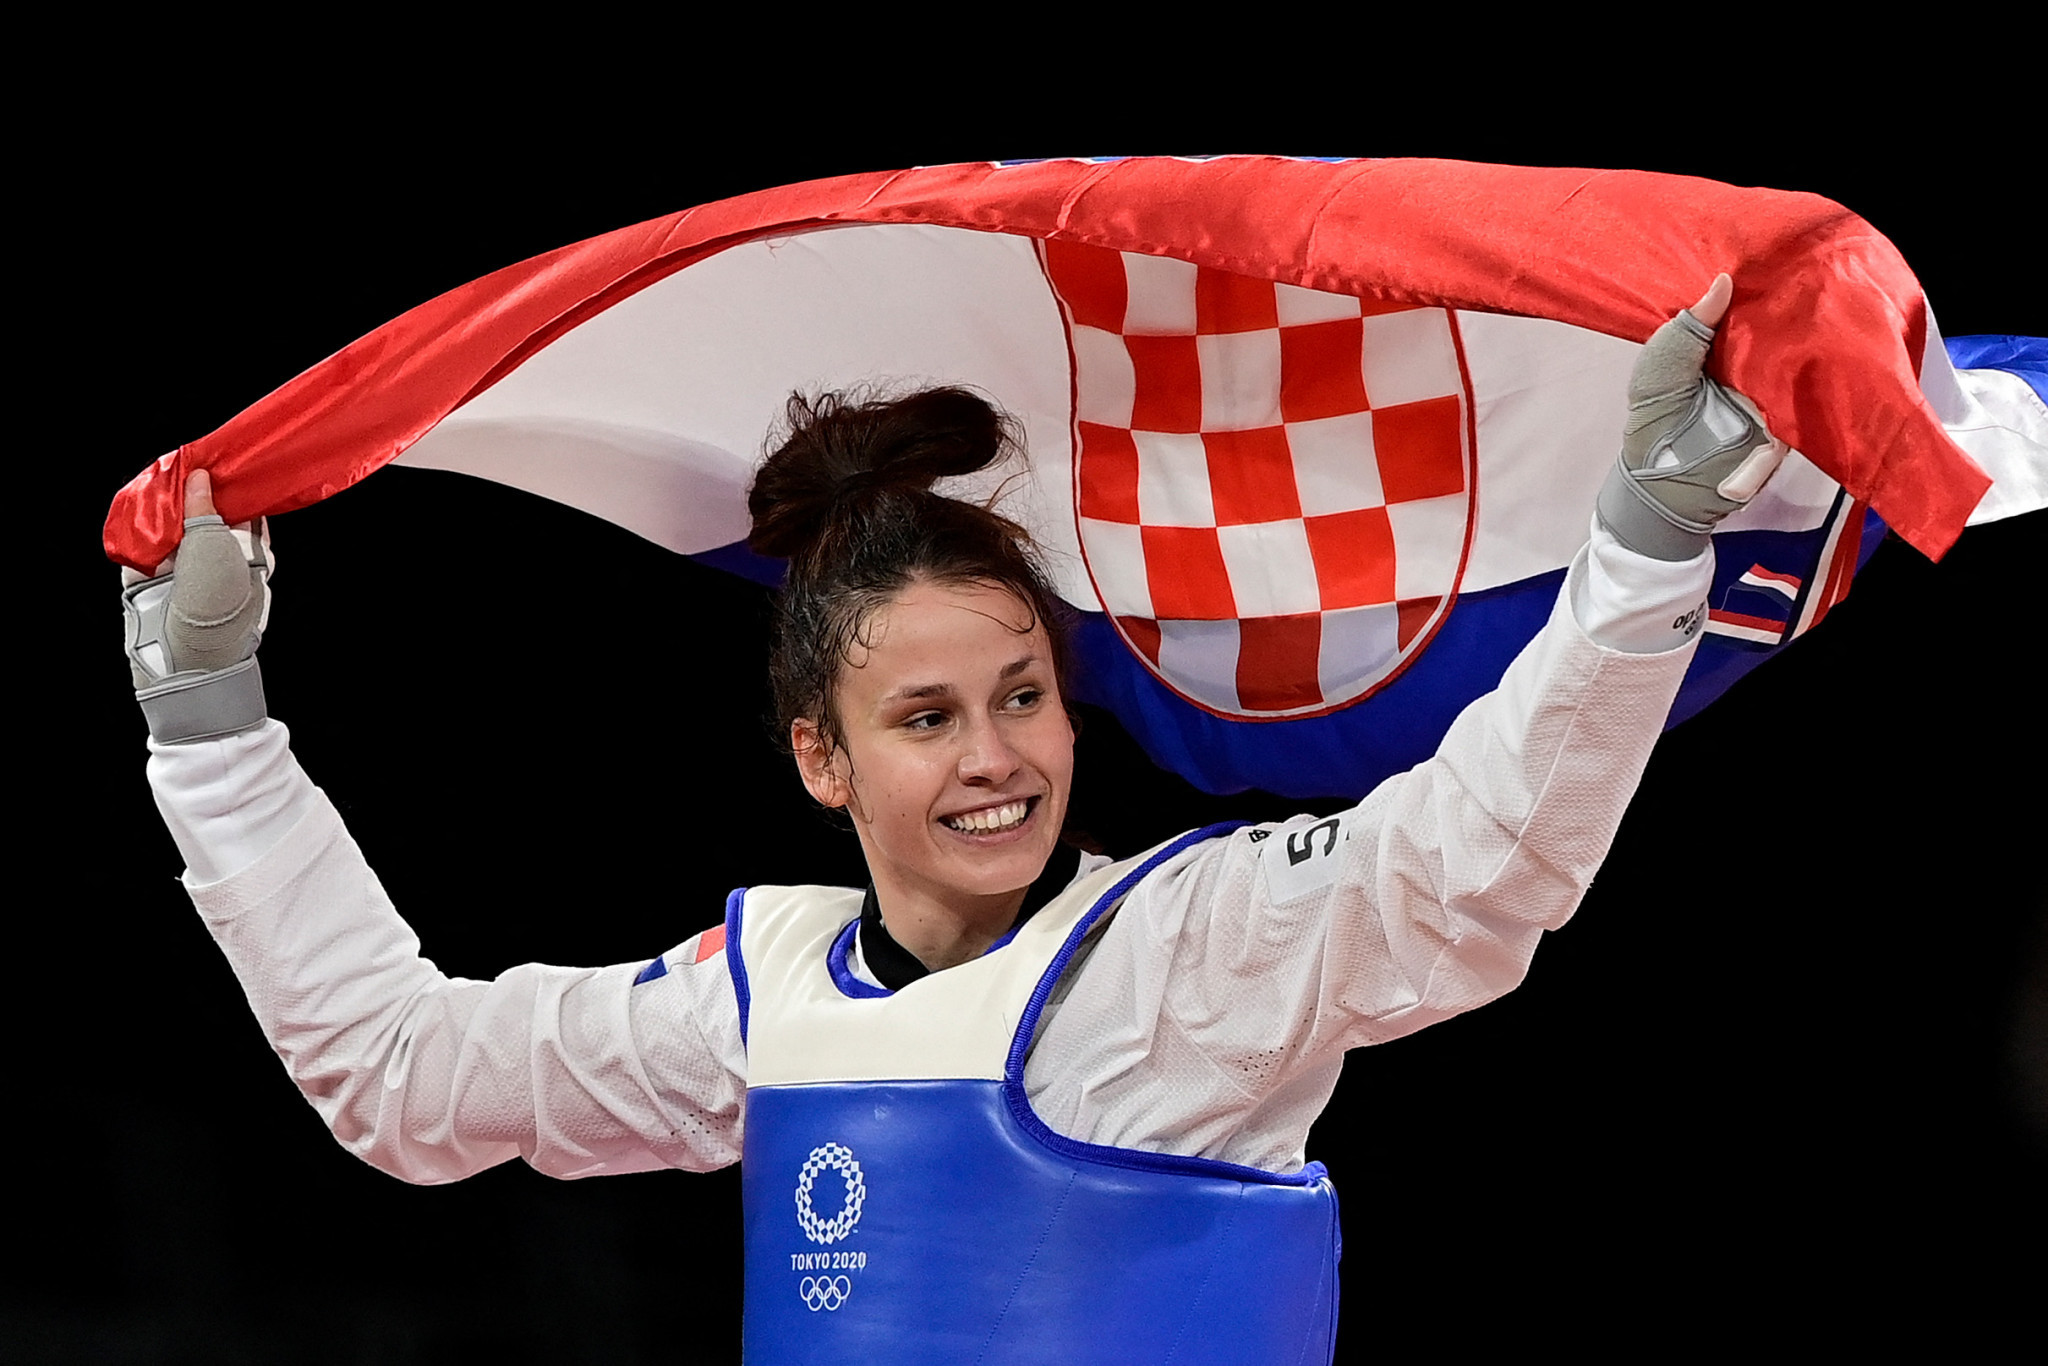 Matea Jelić won Olympic gold at Tokyo 2020 in the final moments of her final ©Getty Images